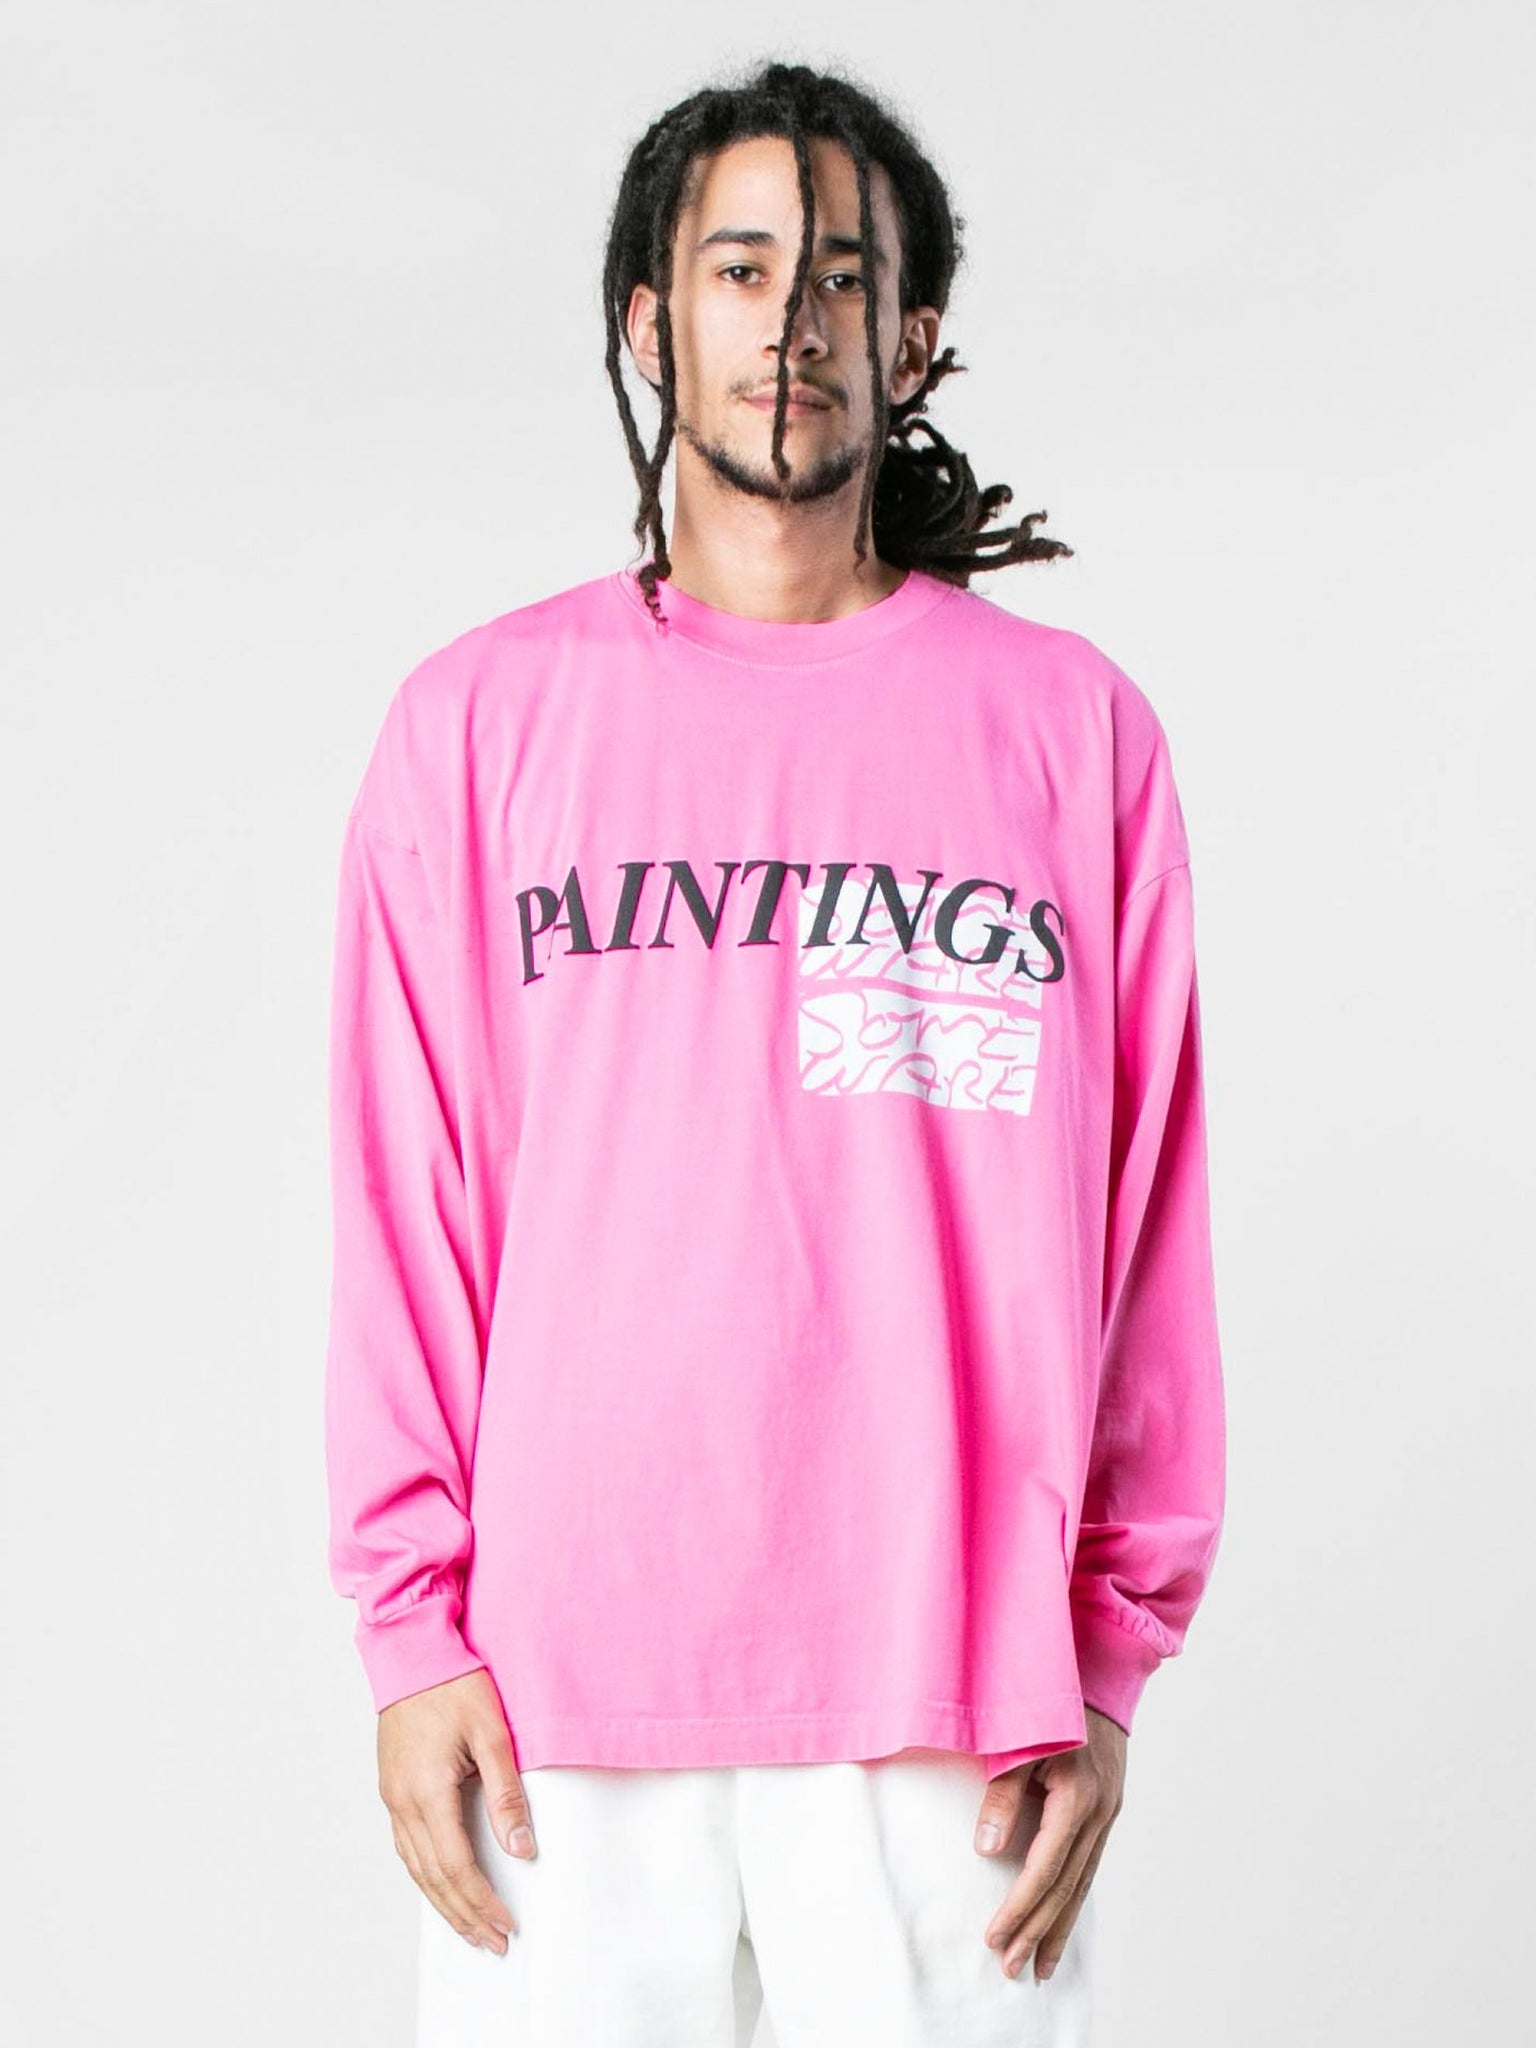 paintings-long-sleeve-t-shirt